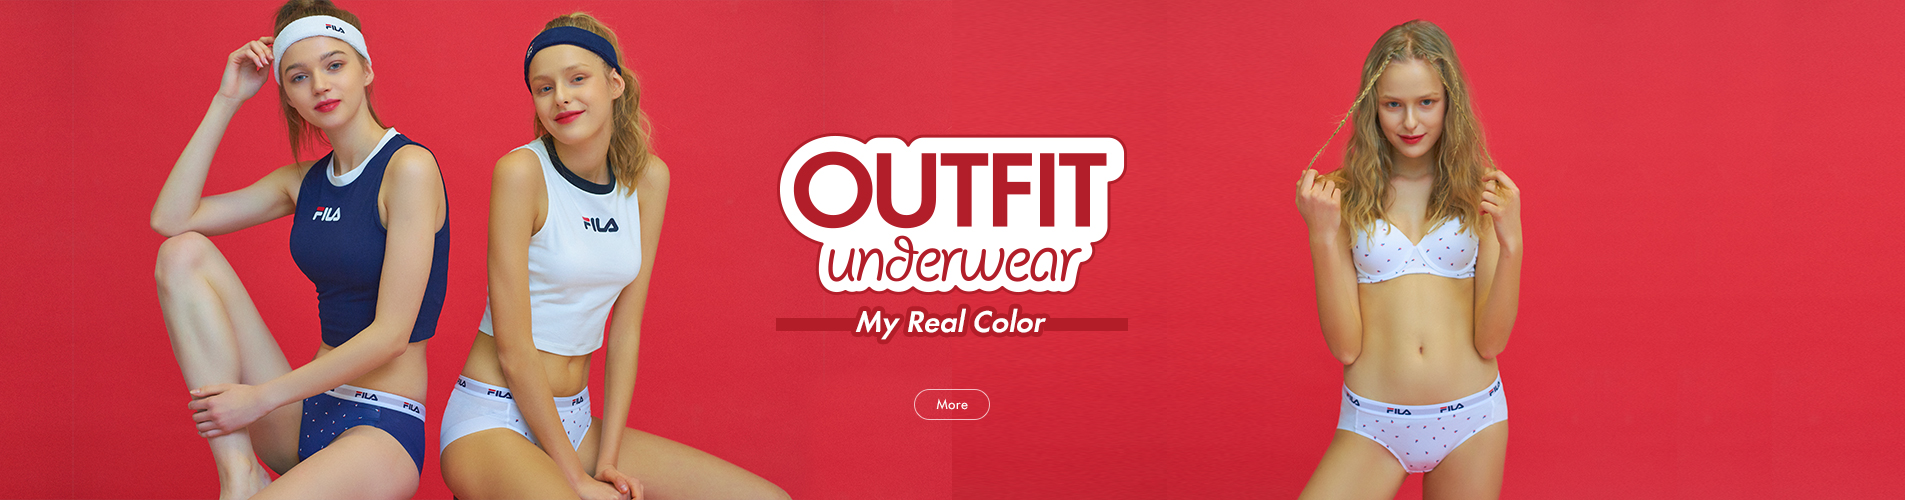 OUTFIT UNDERWEAR 'MY REAL COLOR'